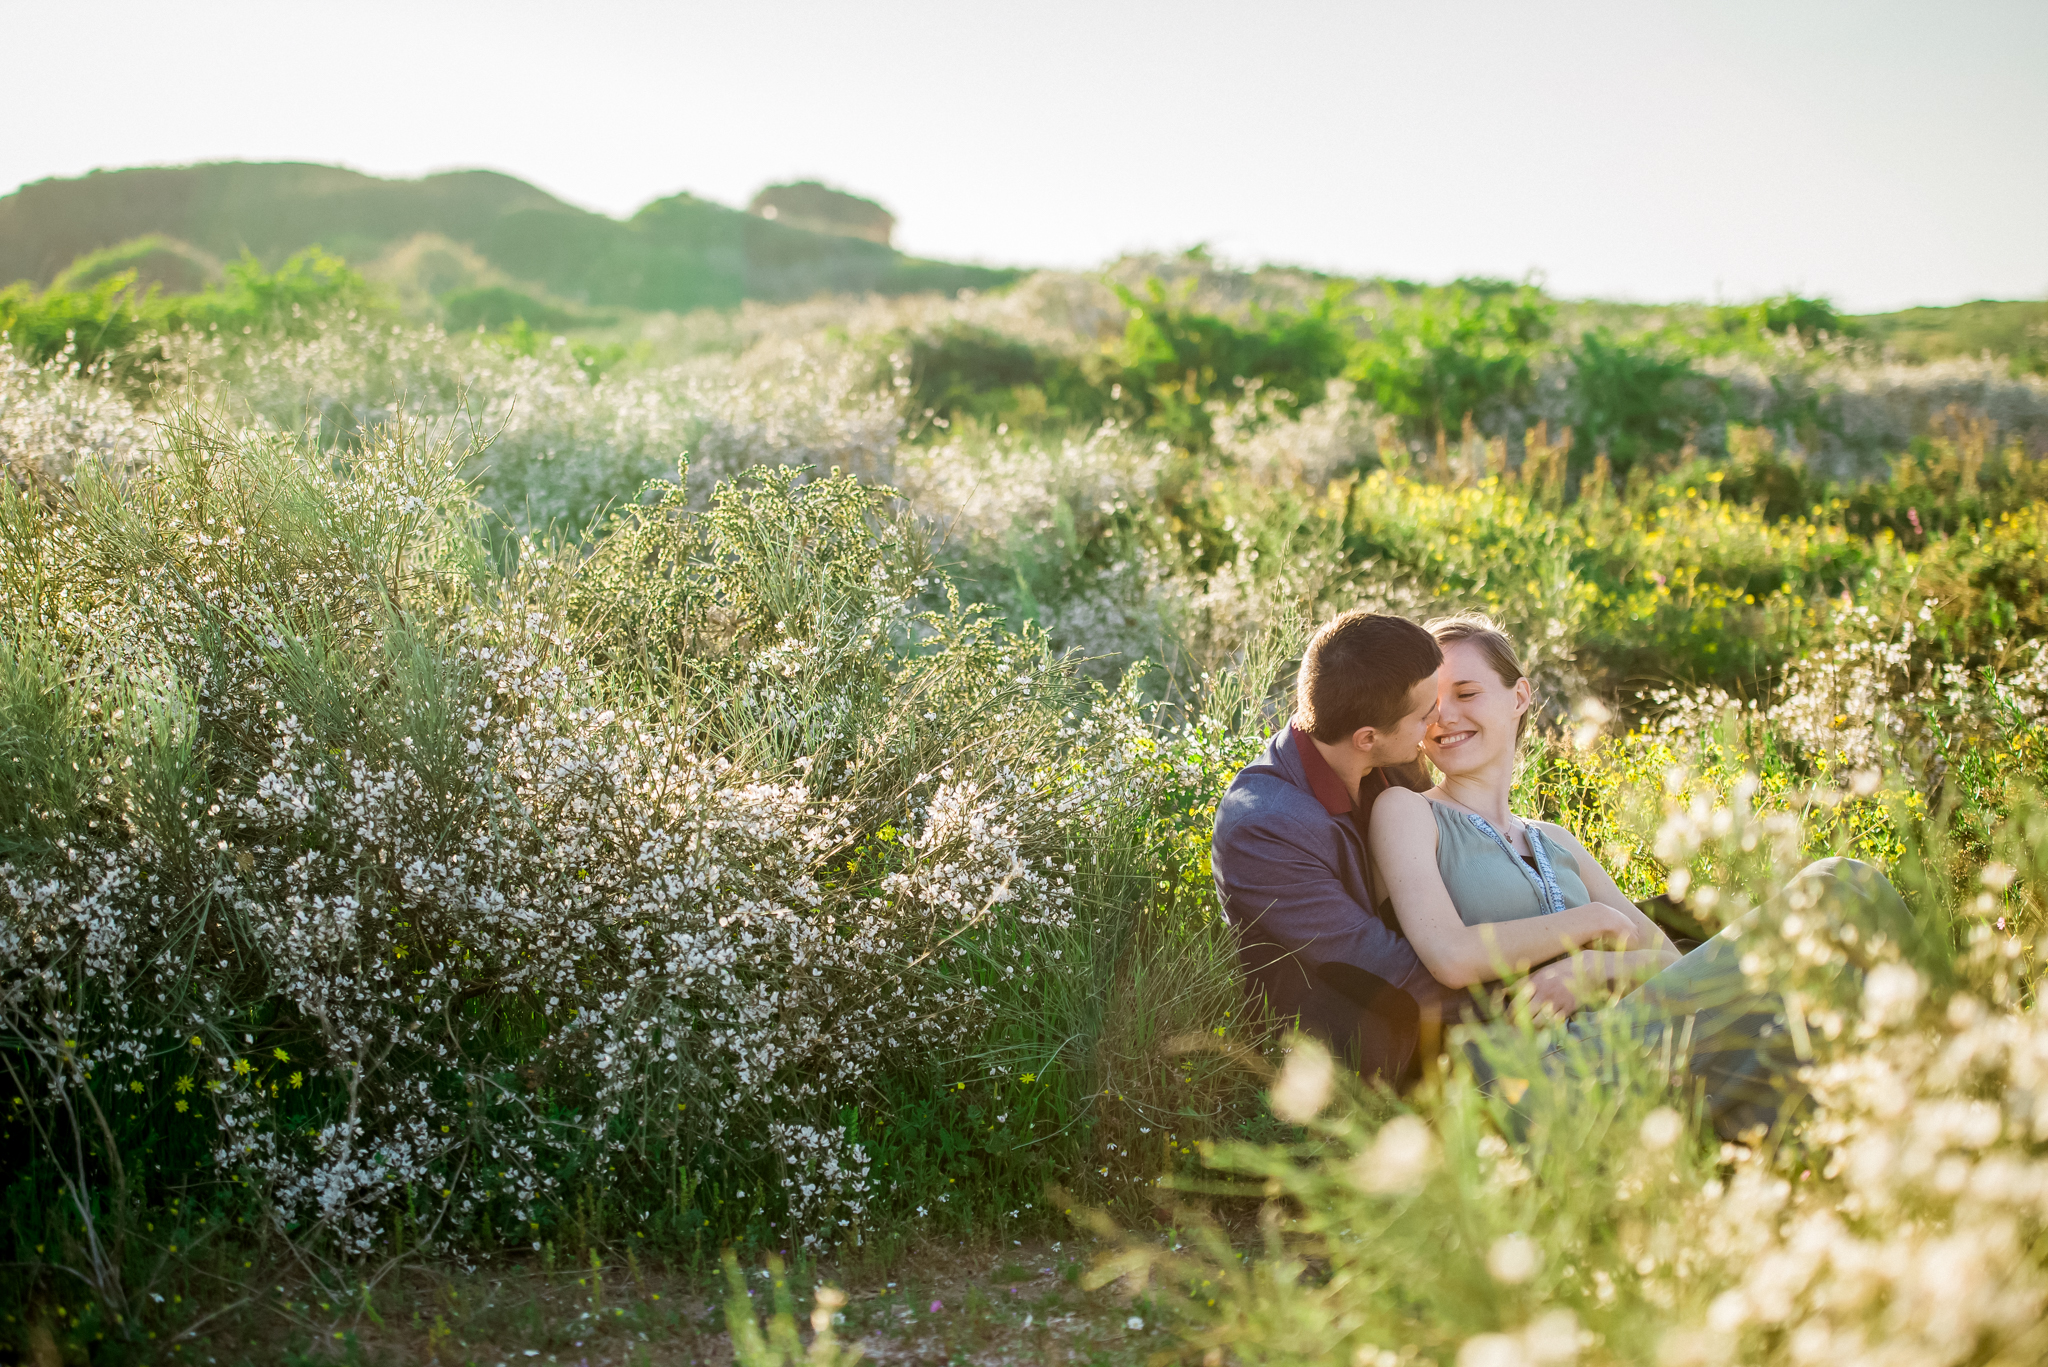 Cliffside-beach-engagement-session-hadera-israel-kate-giryes-photography-9110.jpg